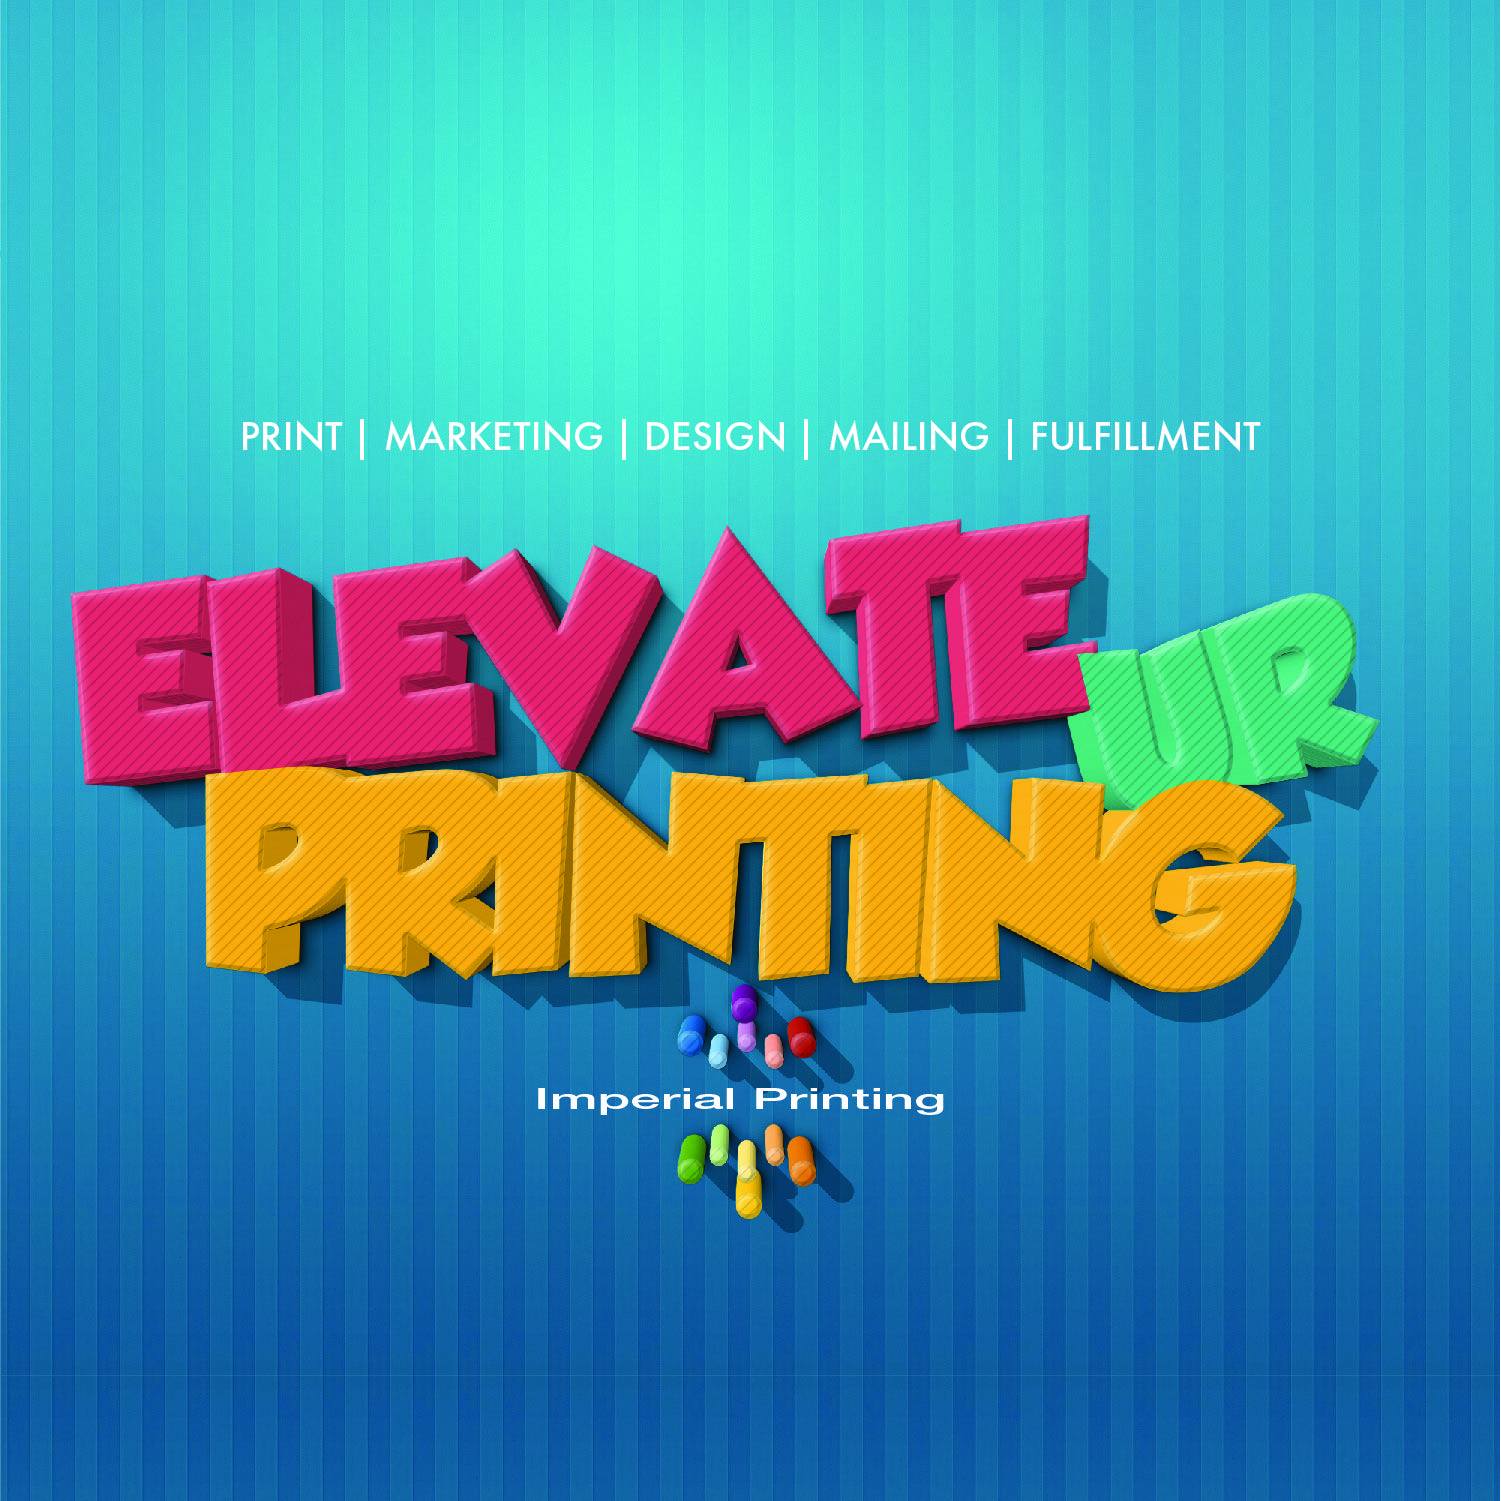 Increase your reach by expanding your brand & elevating your printing. We're on standby to take your print, marketing, & design to the next level!  www.imperialprint.com  #ImperialPrinting #B2B #Elevate #Print #Printing #Prints #PrintDesign #ScreenPrint #ScreenPrinting #Campbell #BayArea